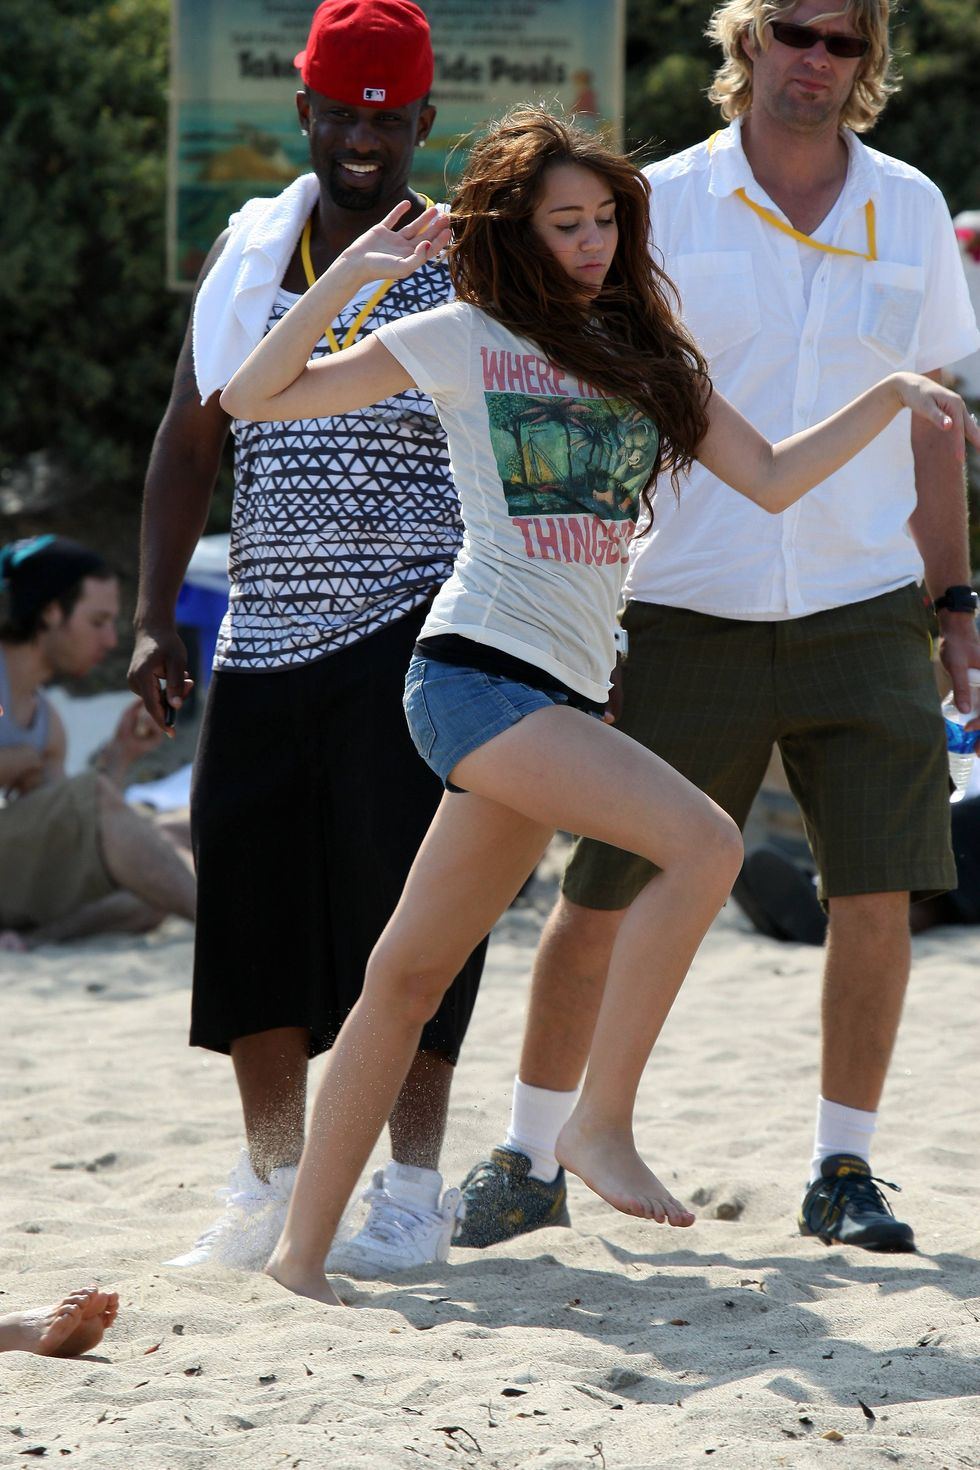 miley-cyrus-hannah-montana-the-movie-movie-set-in-malibu-beach-01